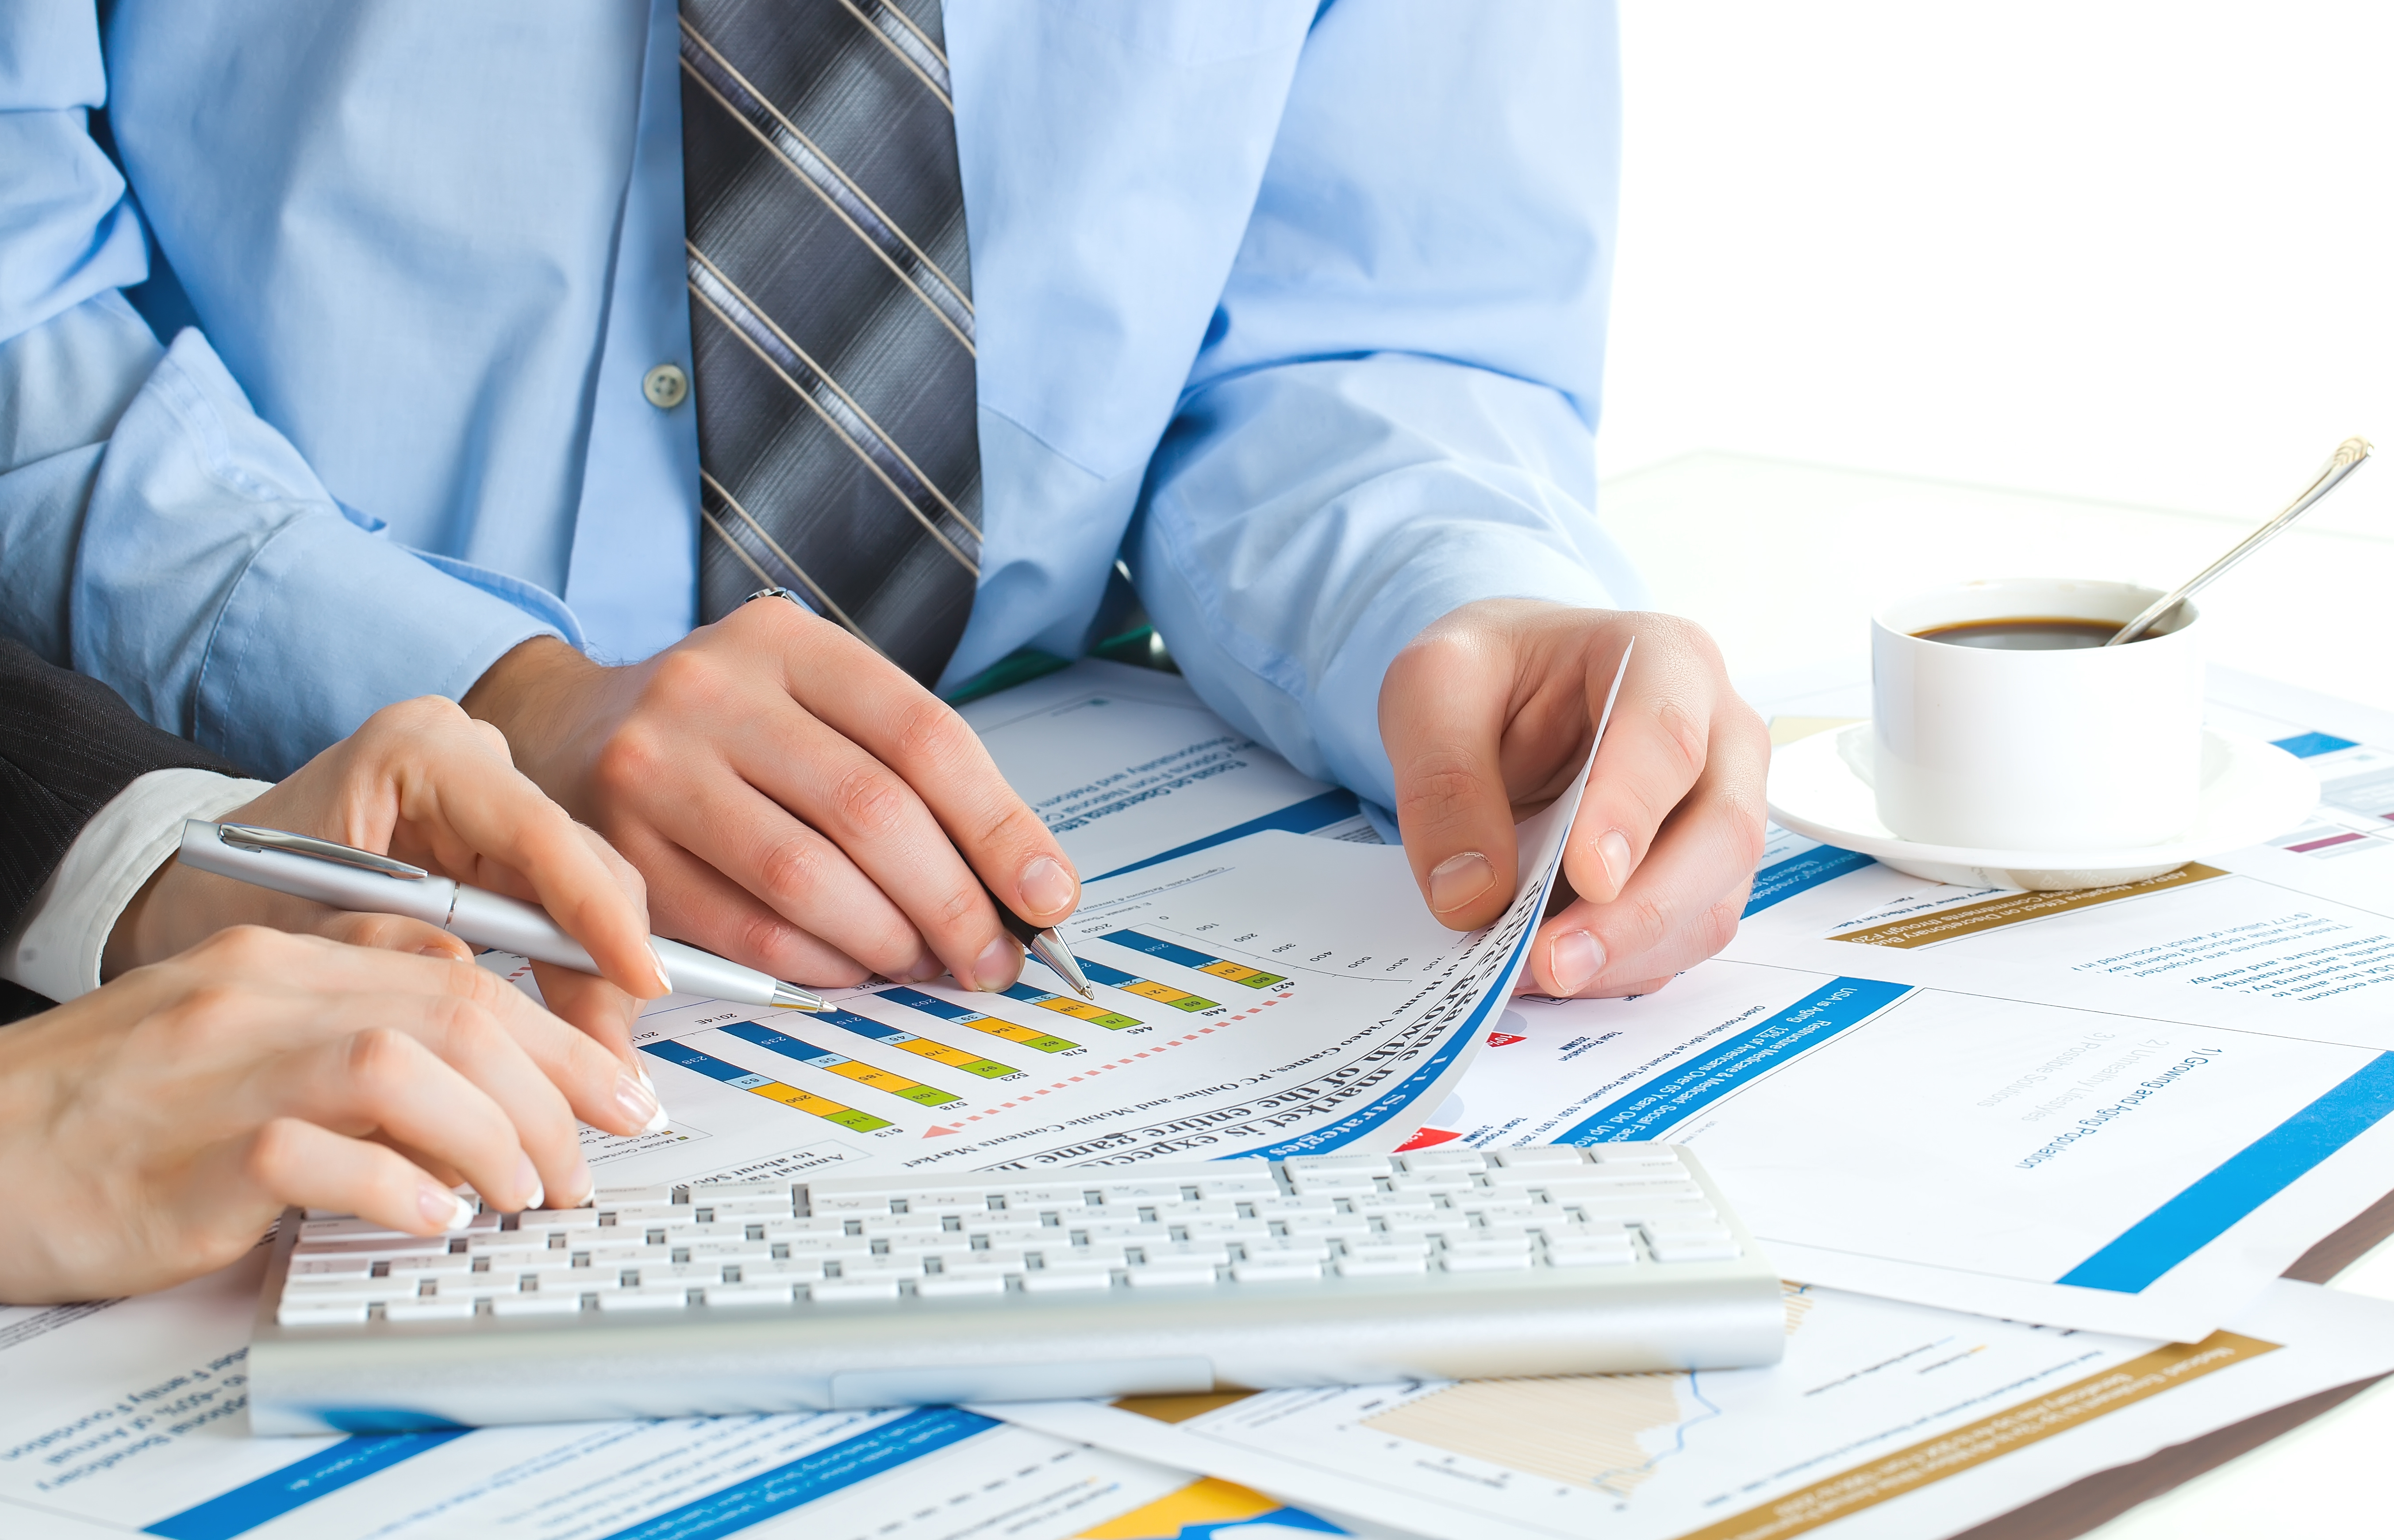 Not-For-Profit Accounting & Bookkeeping, Financial Services